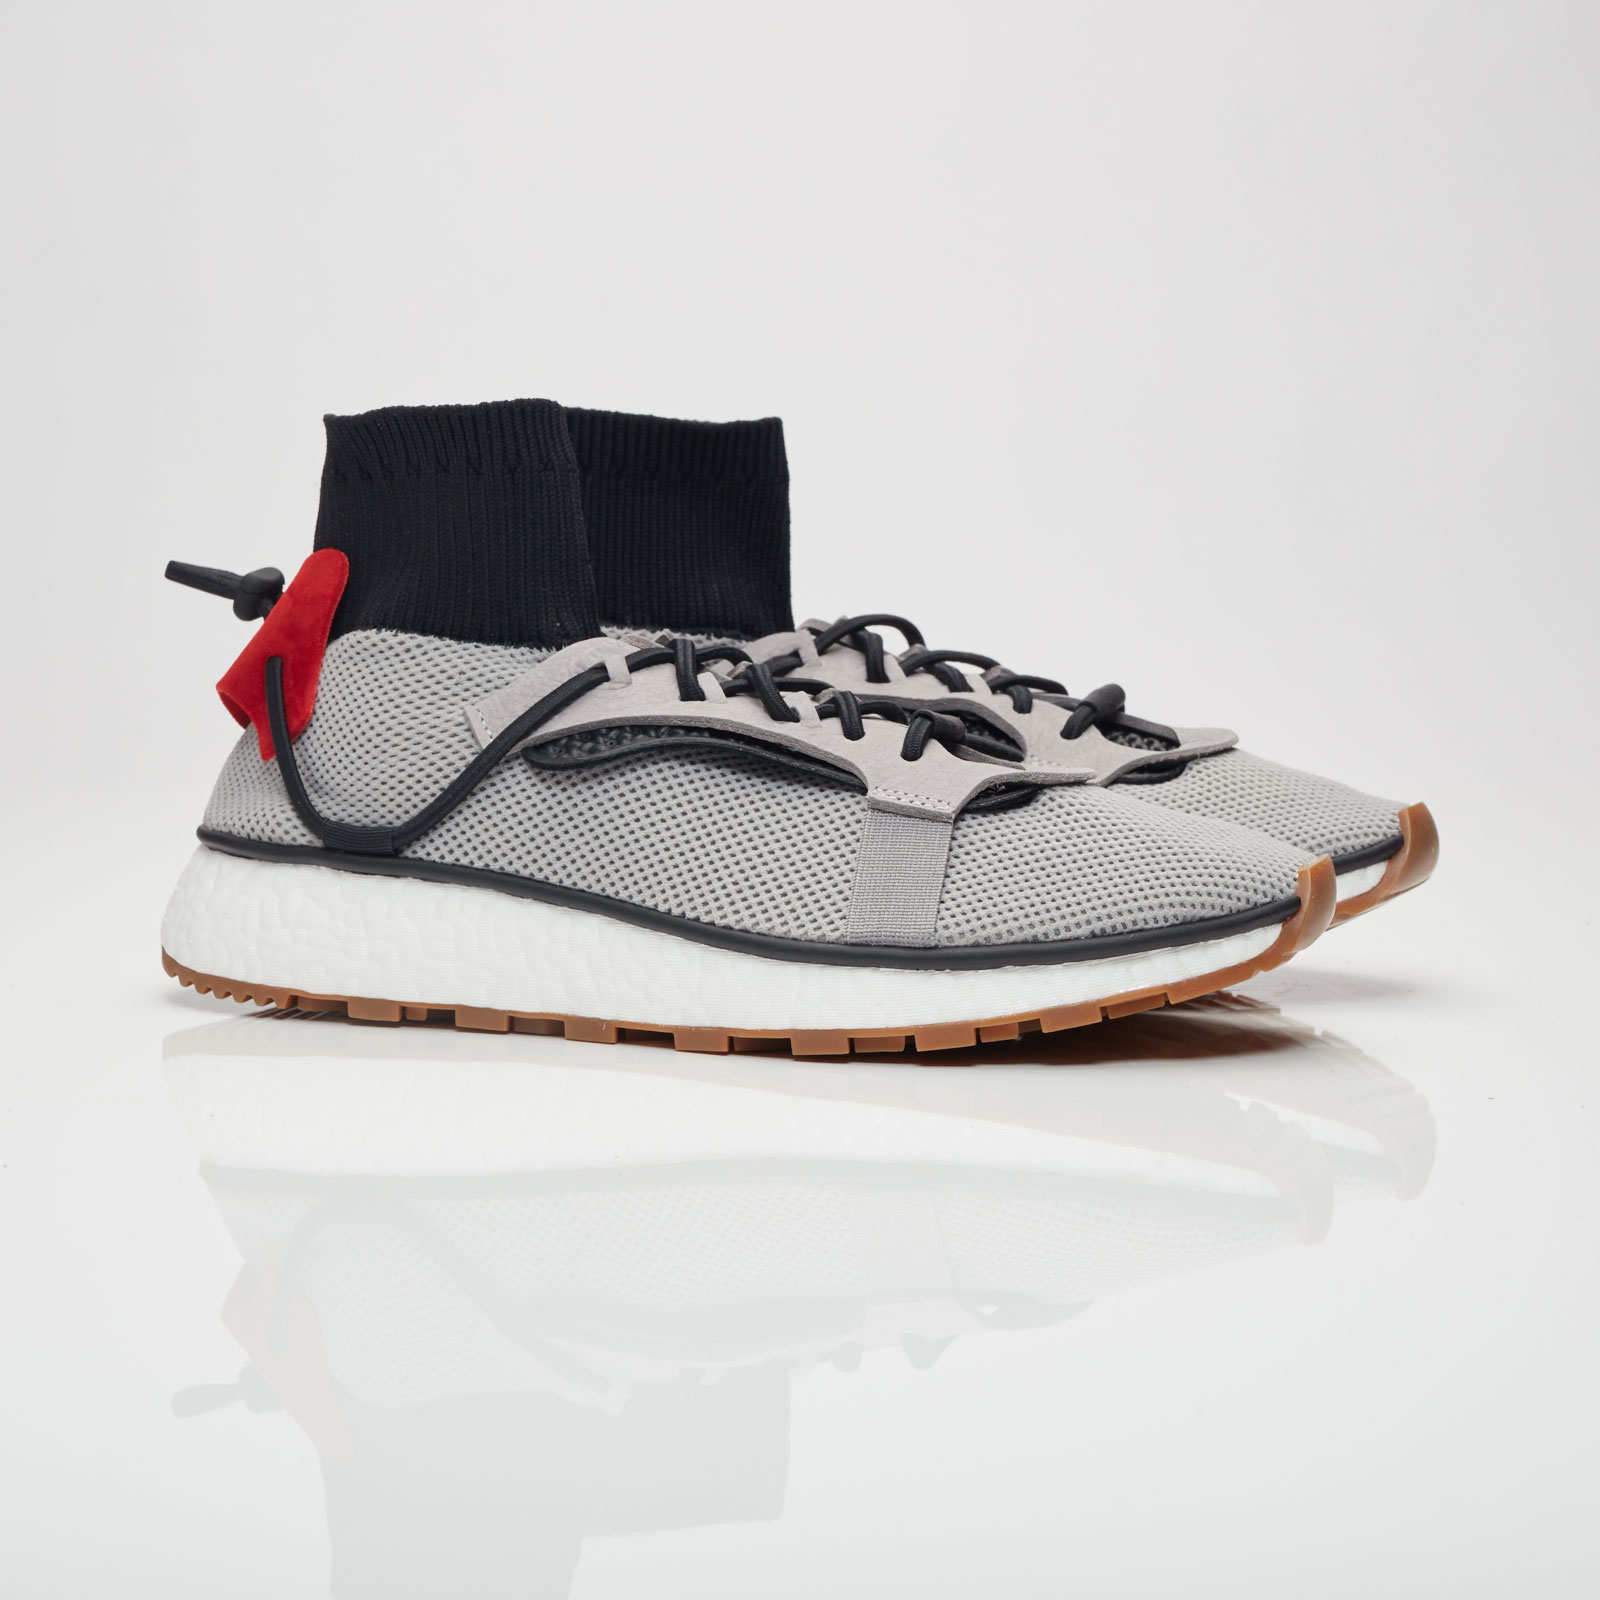 nouveau style 5afb1 e4b71 adidas AW Run - Cm7826 - Sneakersnstuff   sneakers ...